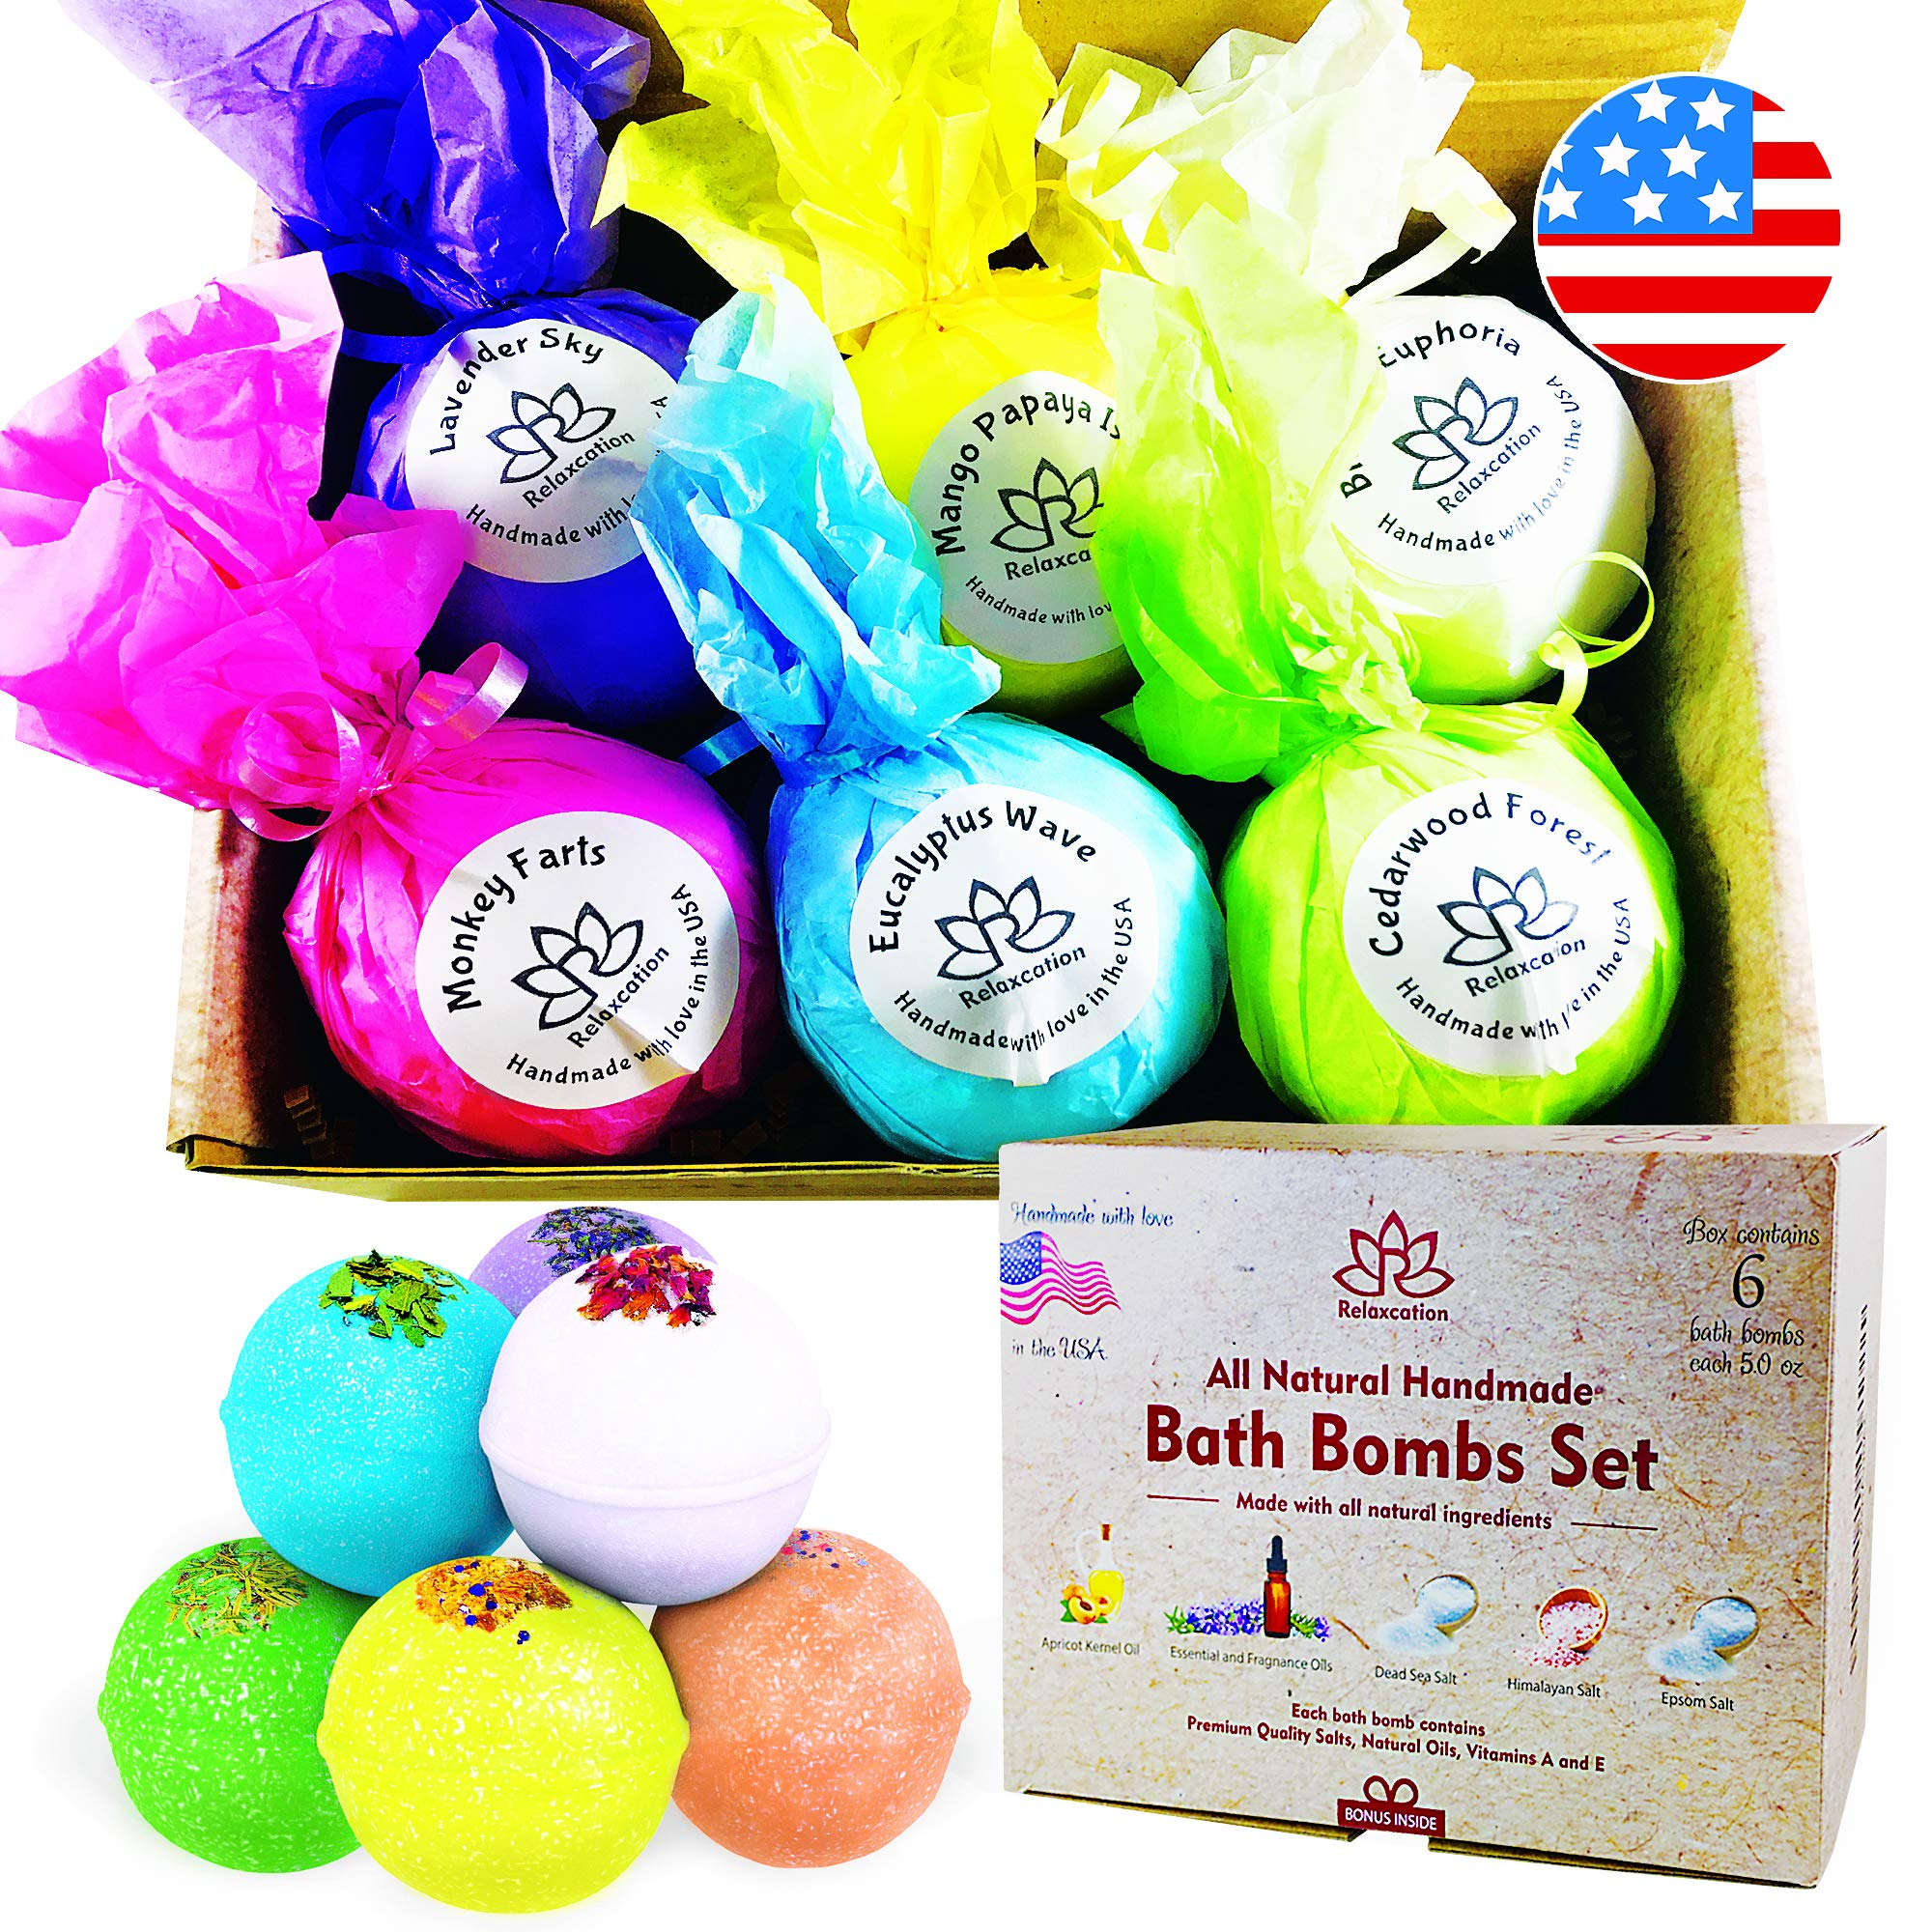 Natural Bath Bombs Gift Set For Women, Relaxation and Moisturizing Large Bath Bomb Hand Made in USA, Safe for Sensitive Skin - Epsom Dead Sea Salts & Essential Oils - Spa Fizzies (6x5oz)